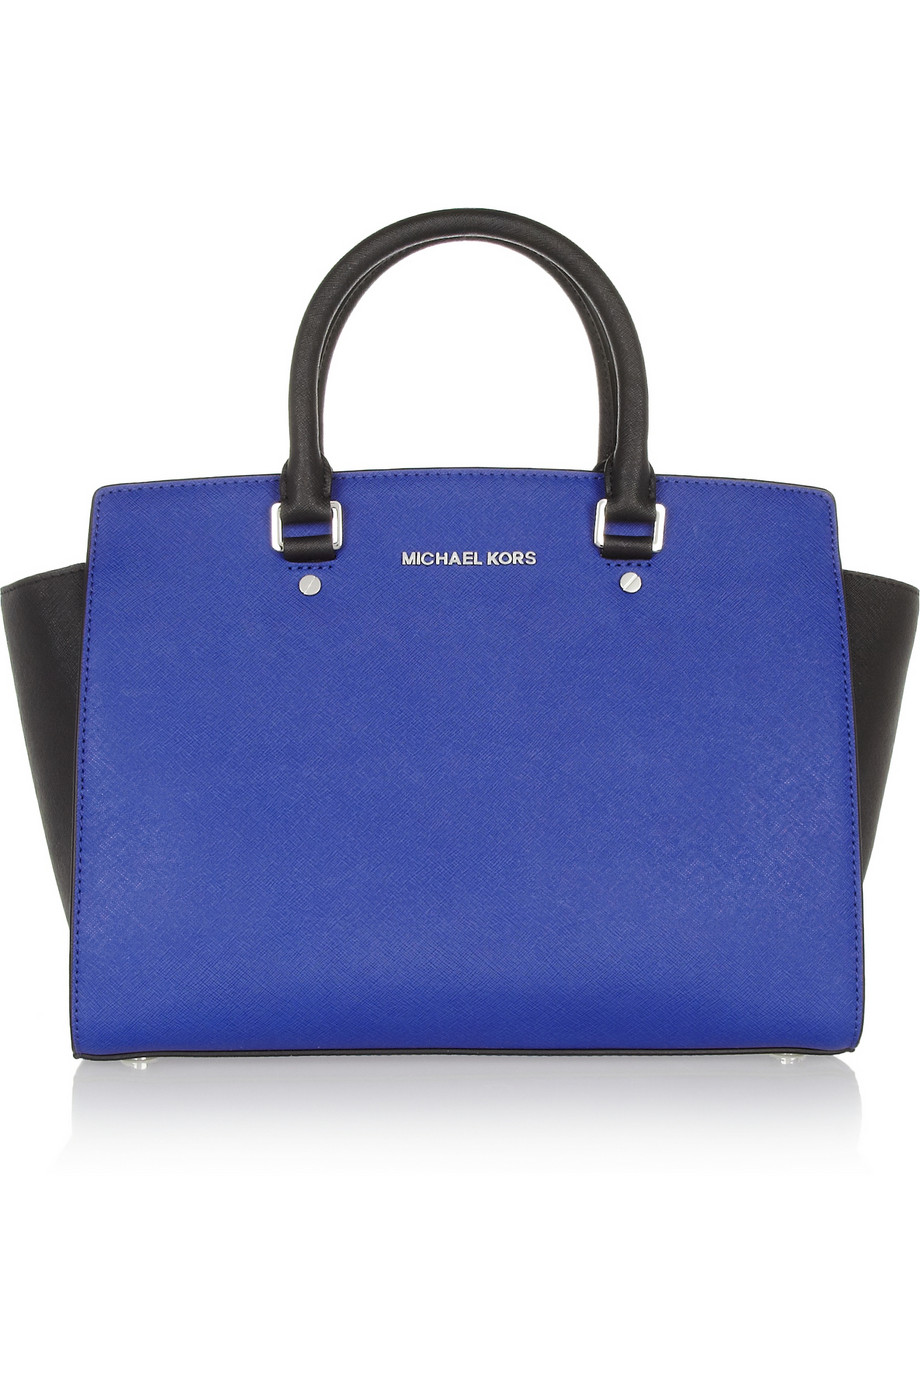 Winter Must Have : Royal-Blue and Black Bags